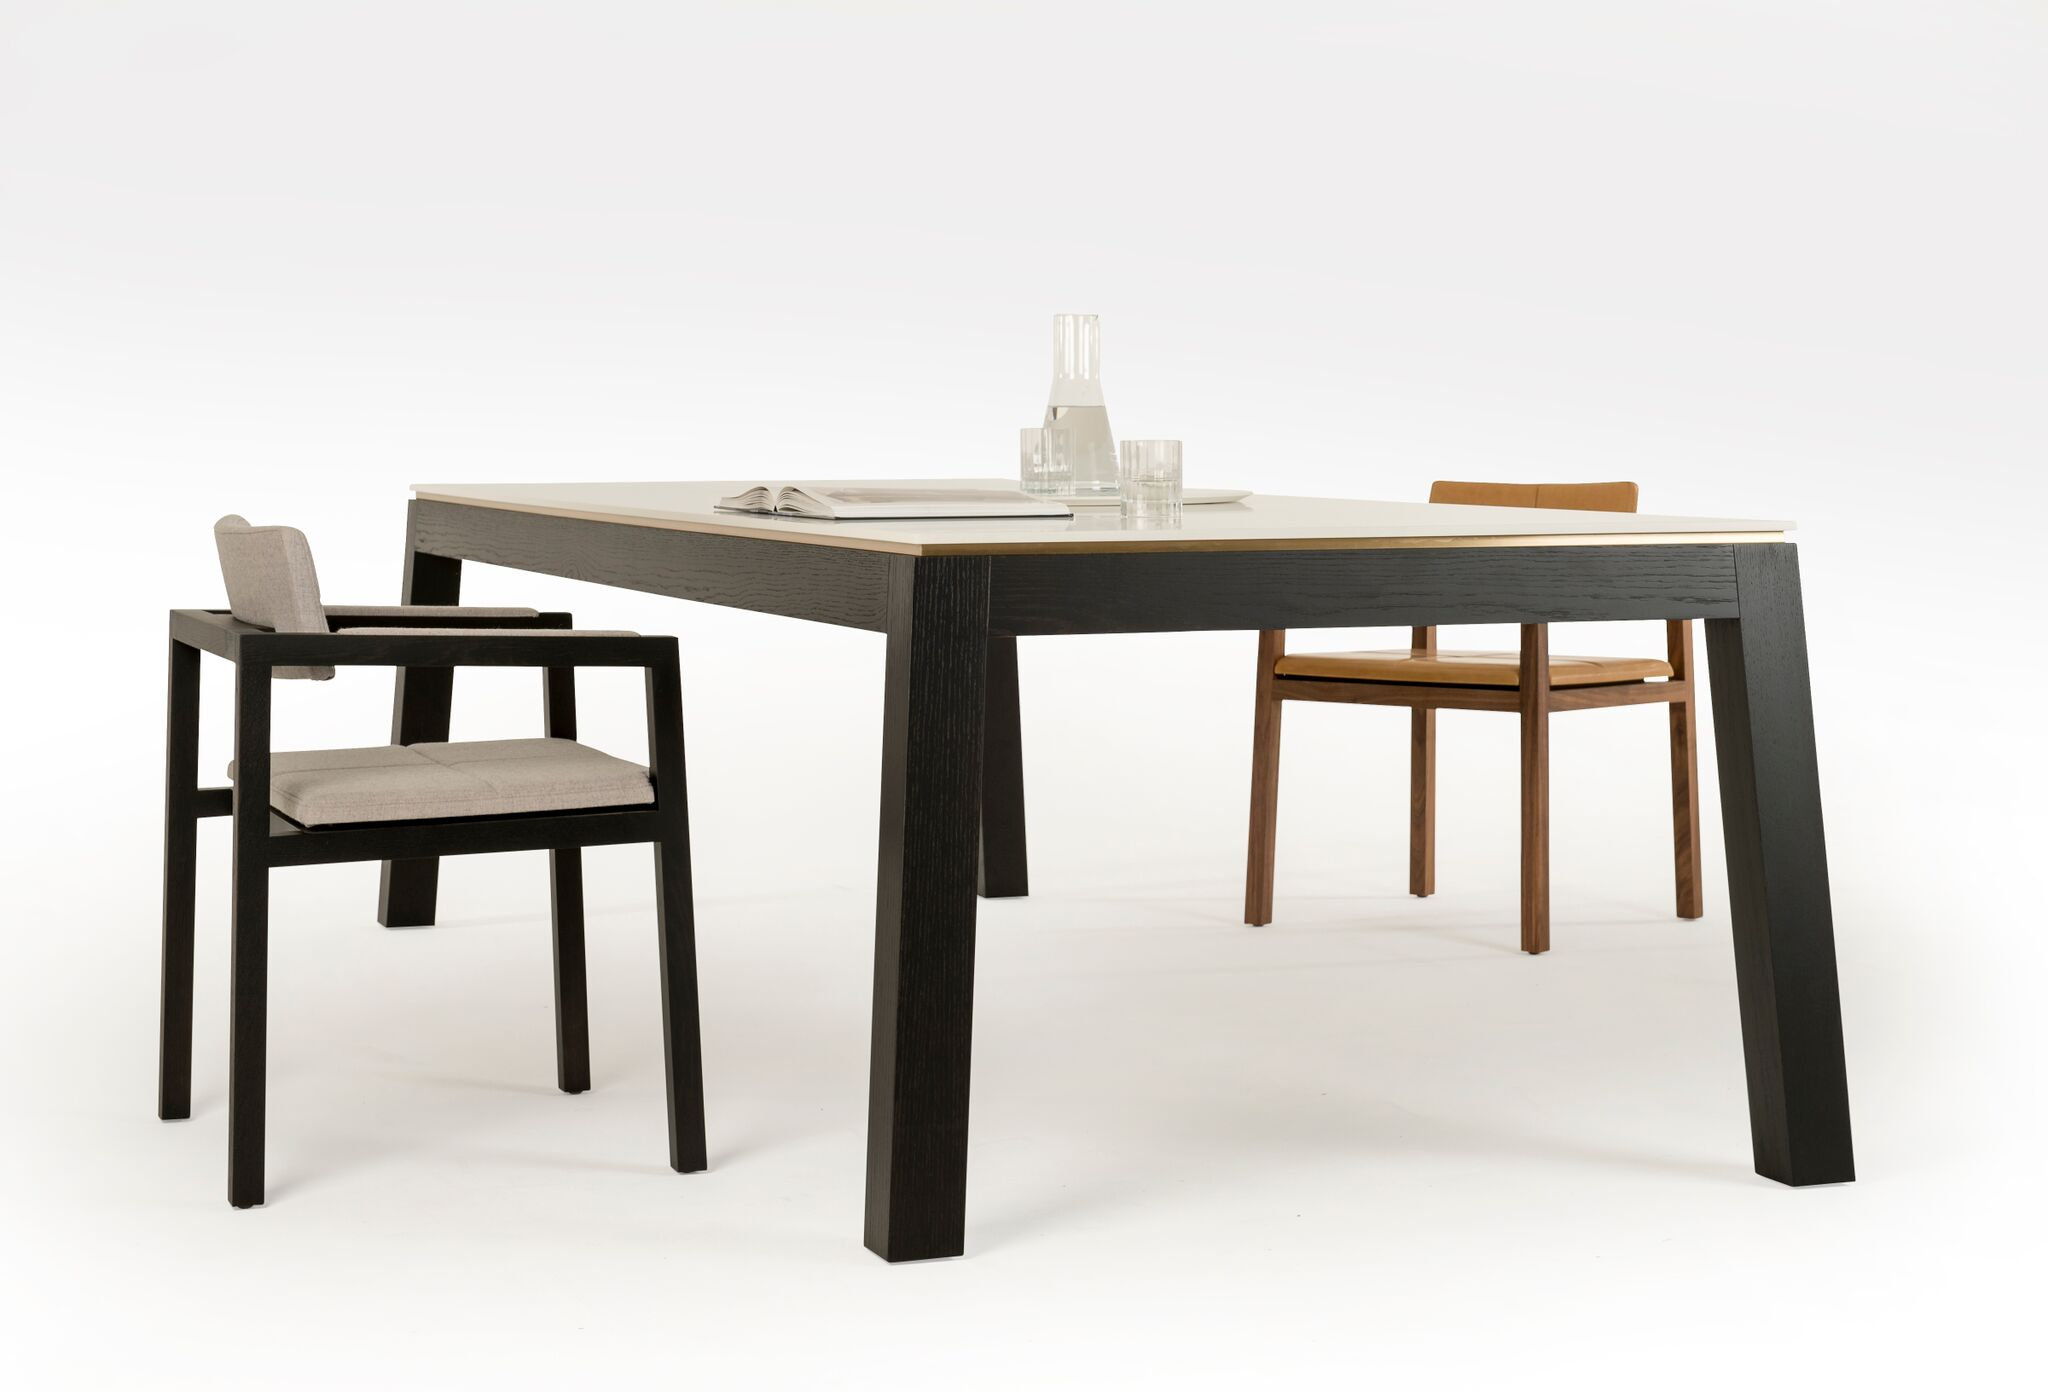 Gallery Of The Mila Table By Fraco Crea Local Australian Furniture Design Melbourne, Vic Image 10